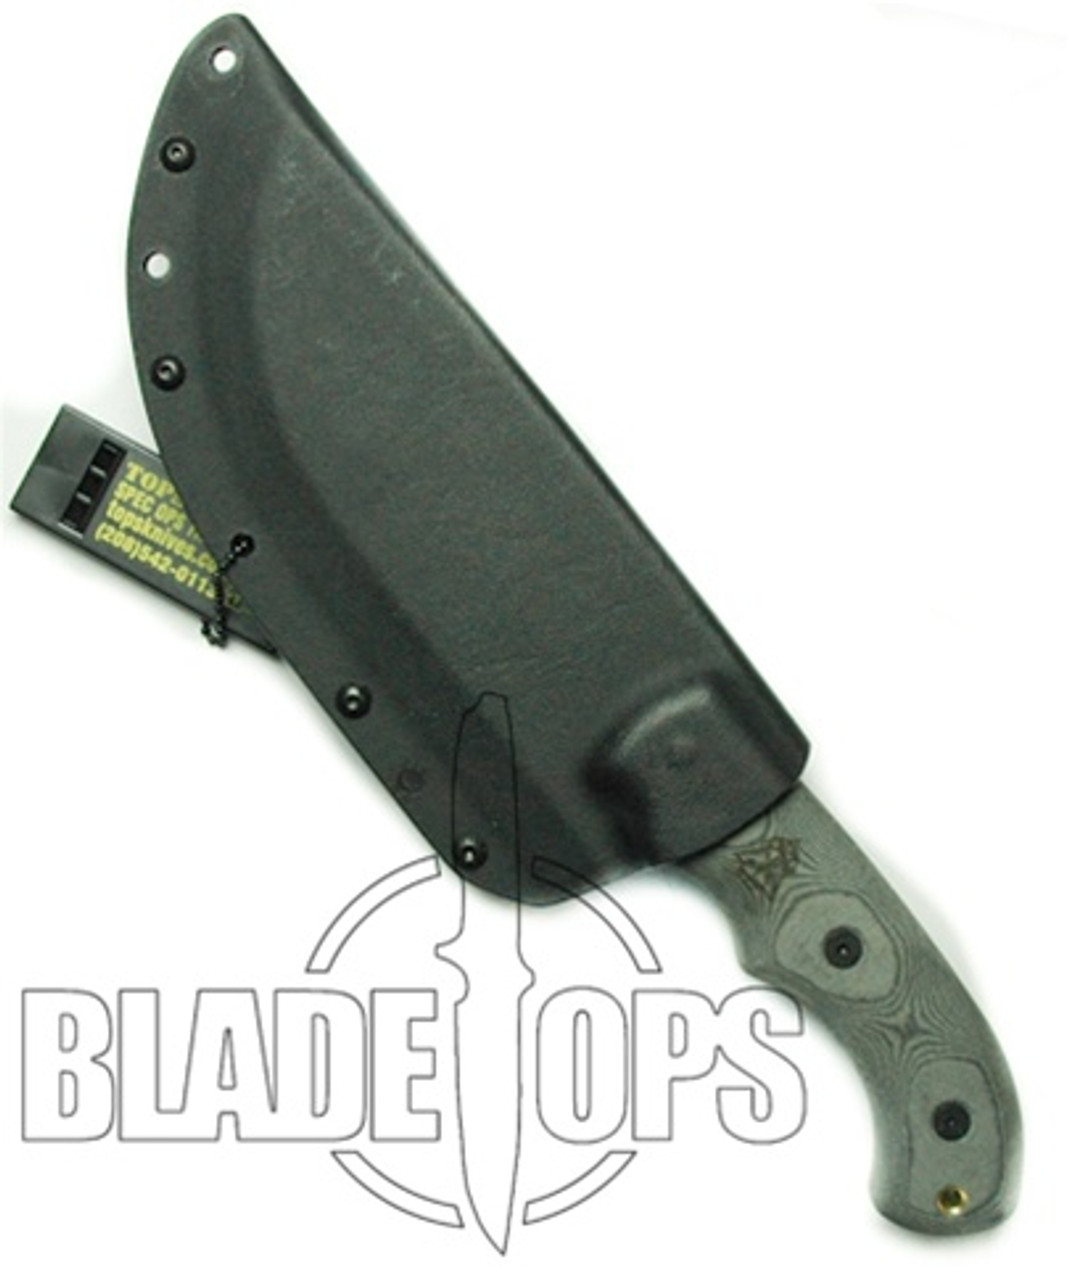 TOPS Knives Tom Brown Tracker Fixed Blade Knife, TPT010